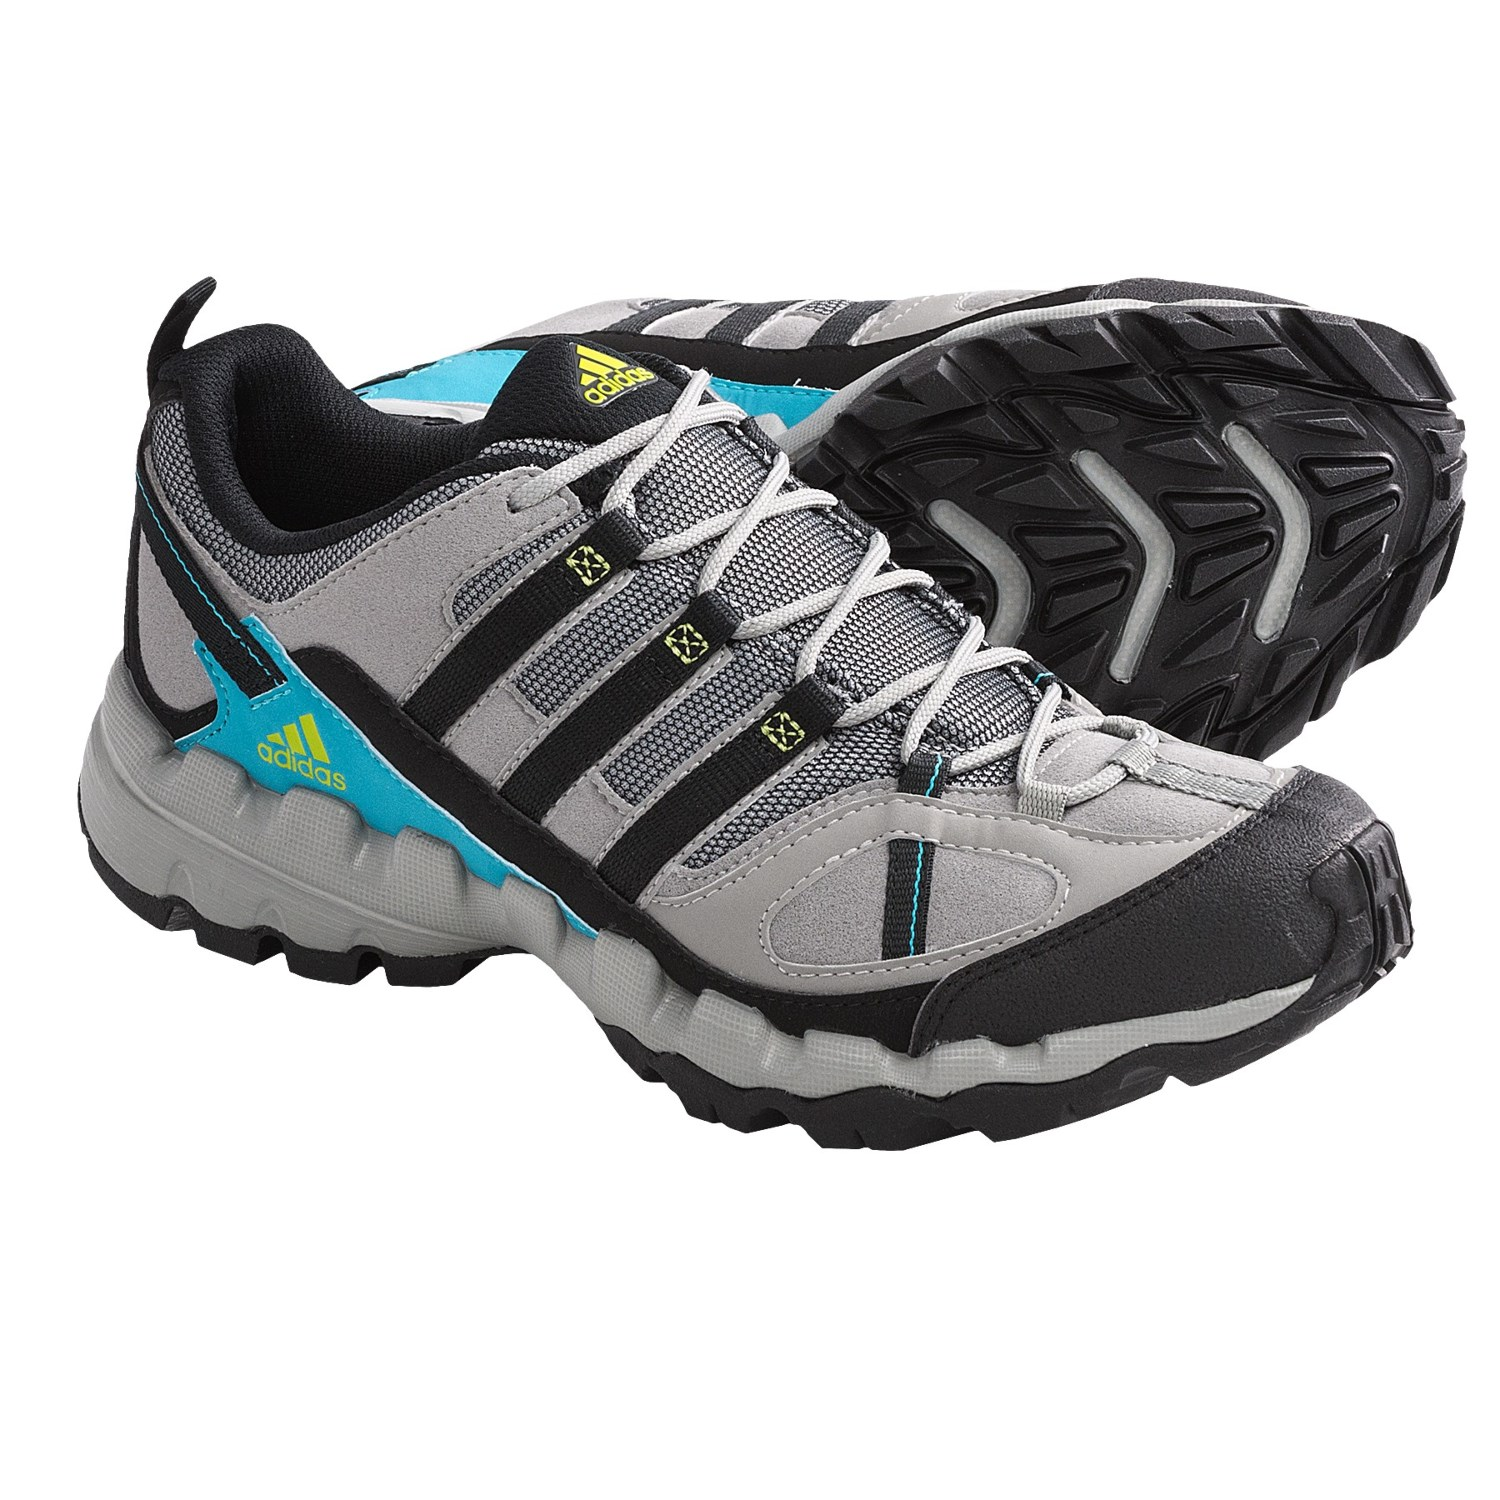 Adidas Outdoor AX 1 TR Hiking Shoes (For Women) in Grey Rock/Black/Lab